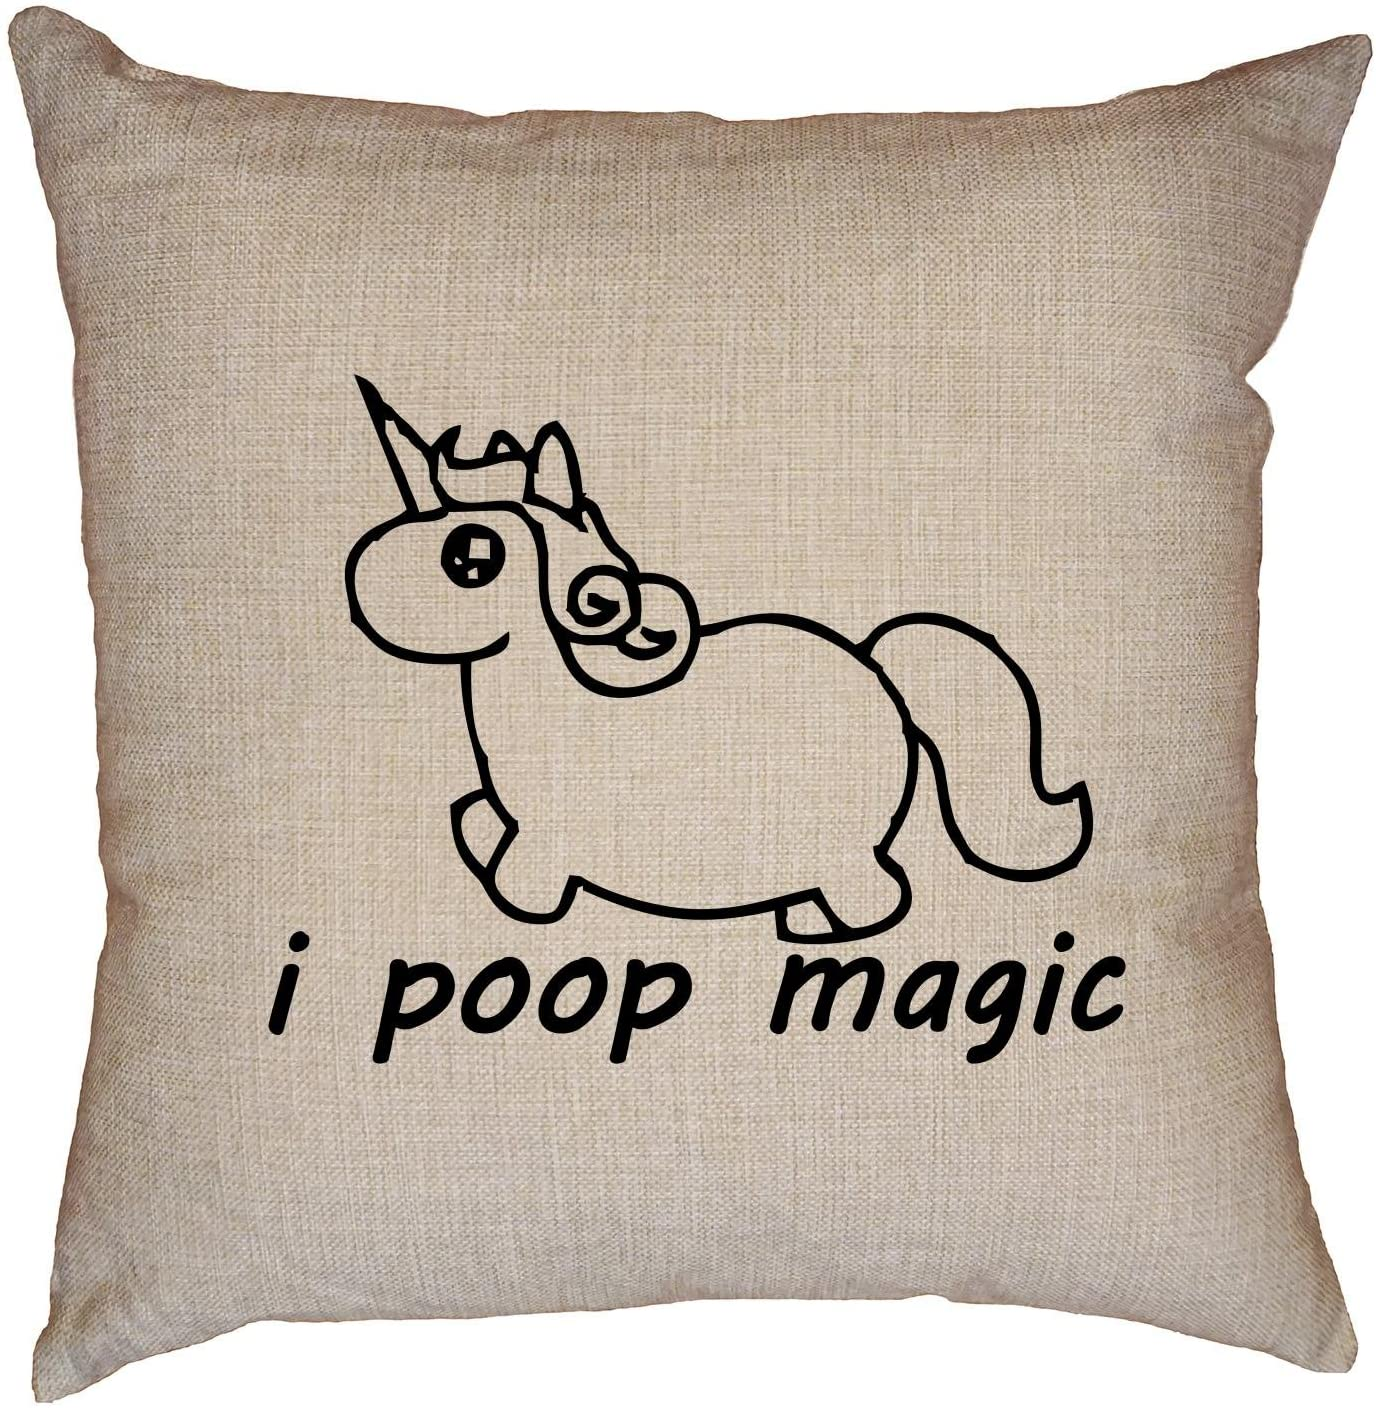 Hollywood Thread I Poop Magic - Hilarious Unicorn Love Graphic Decorative Linen Throw Cushion Pillow Case with Insert